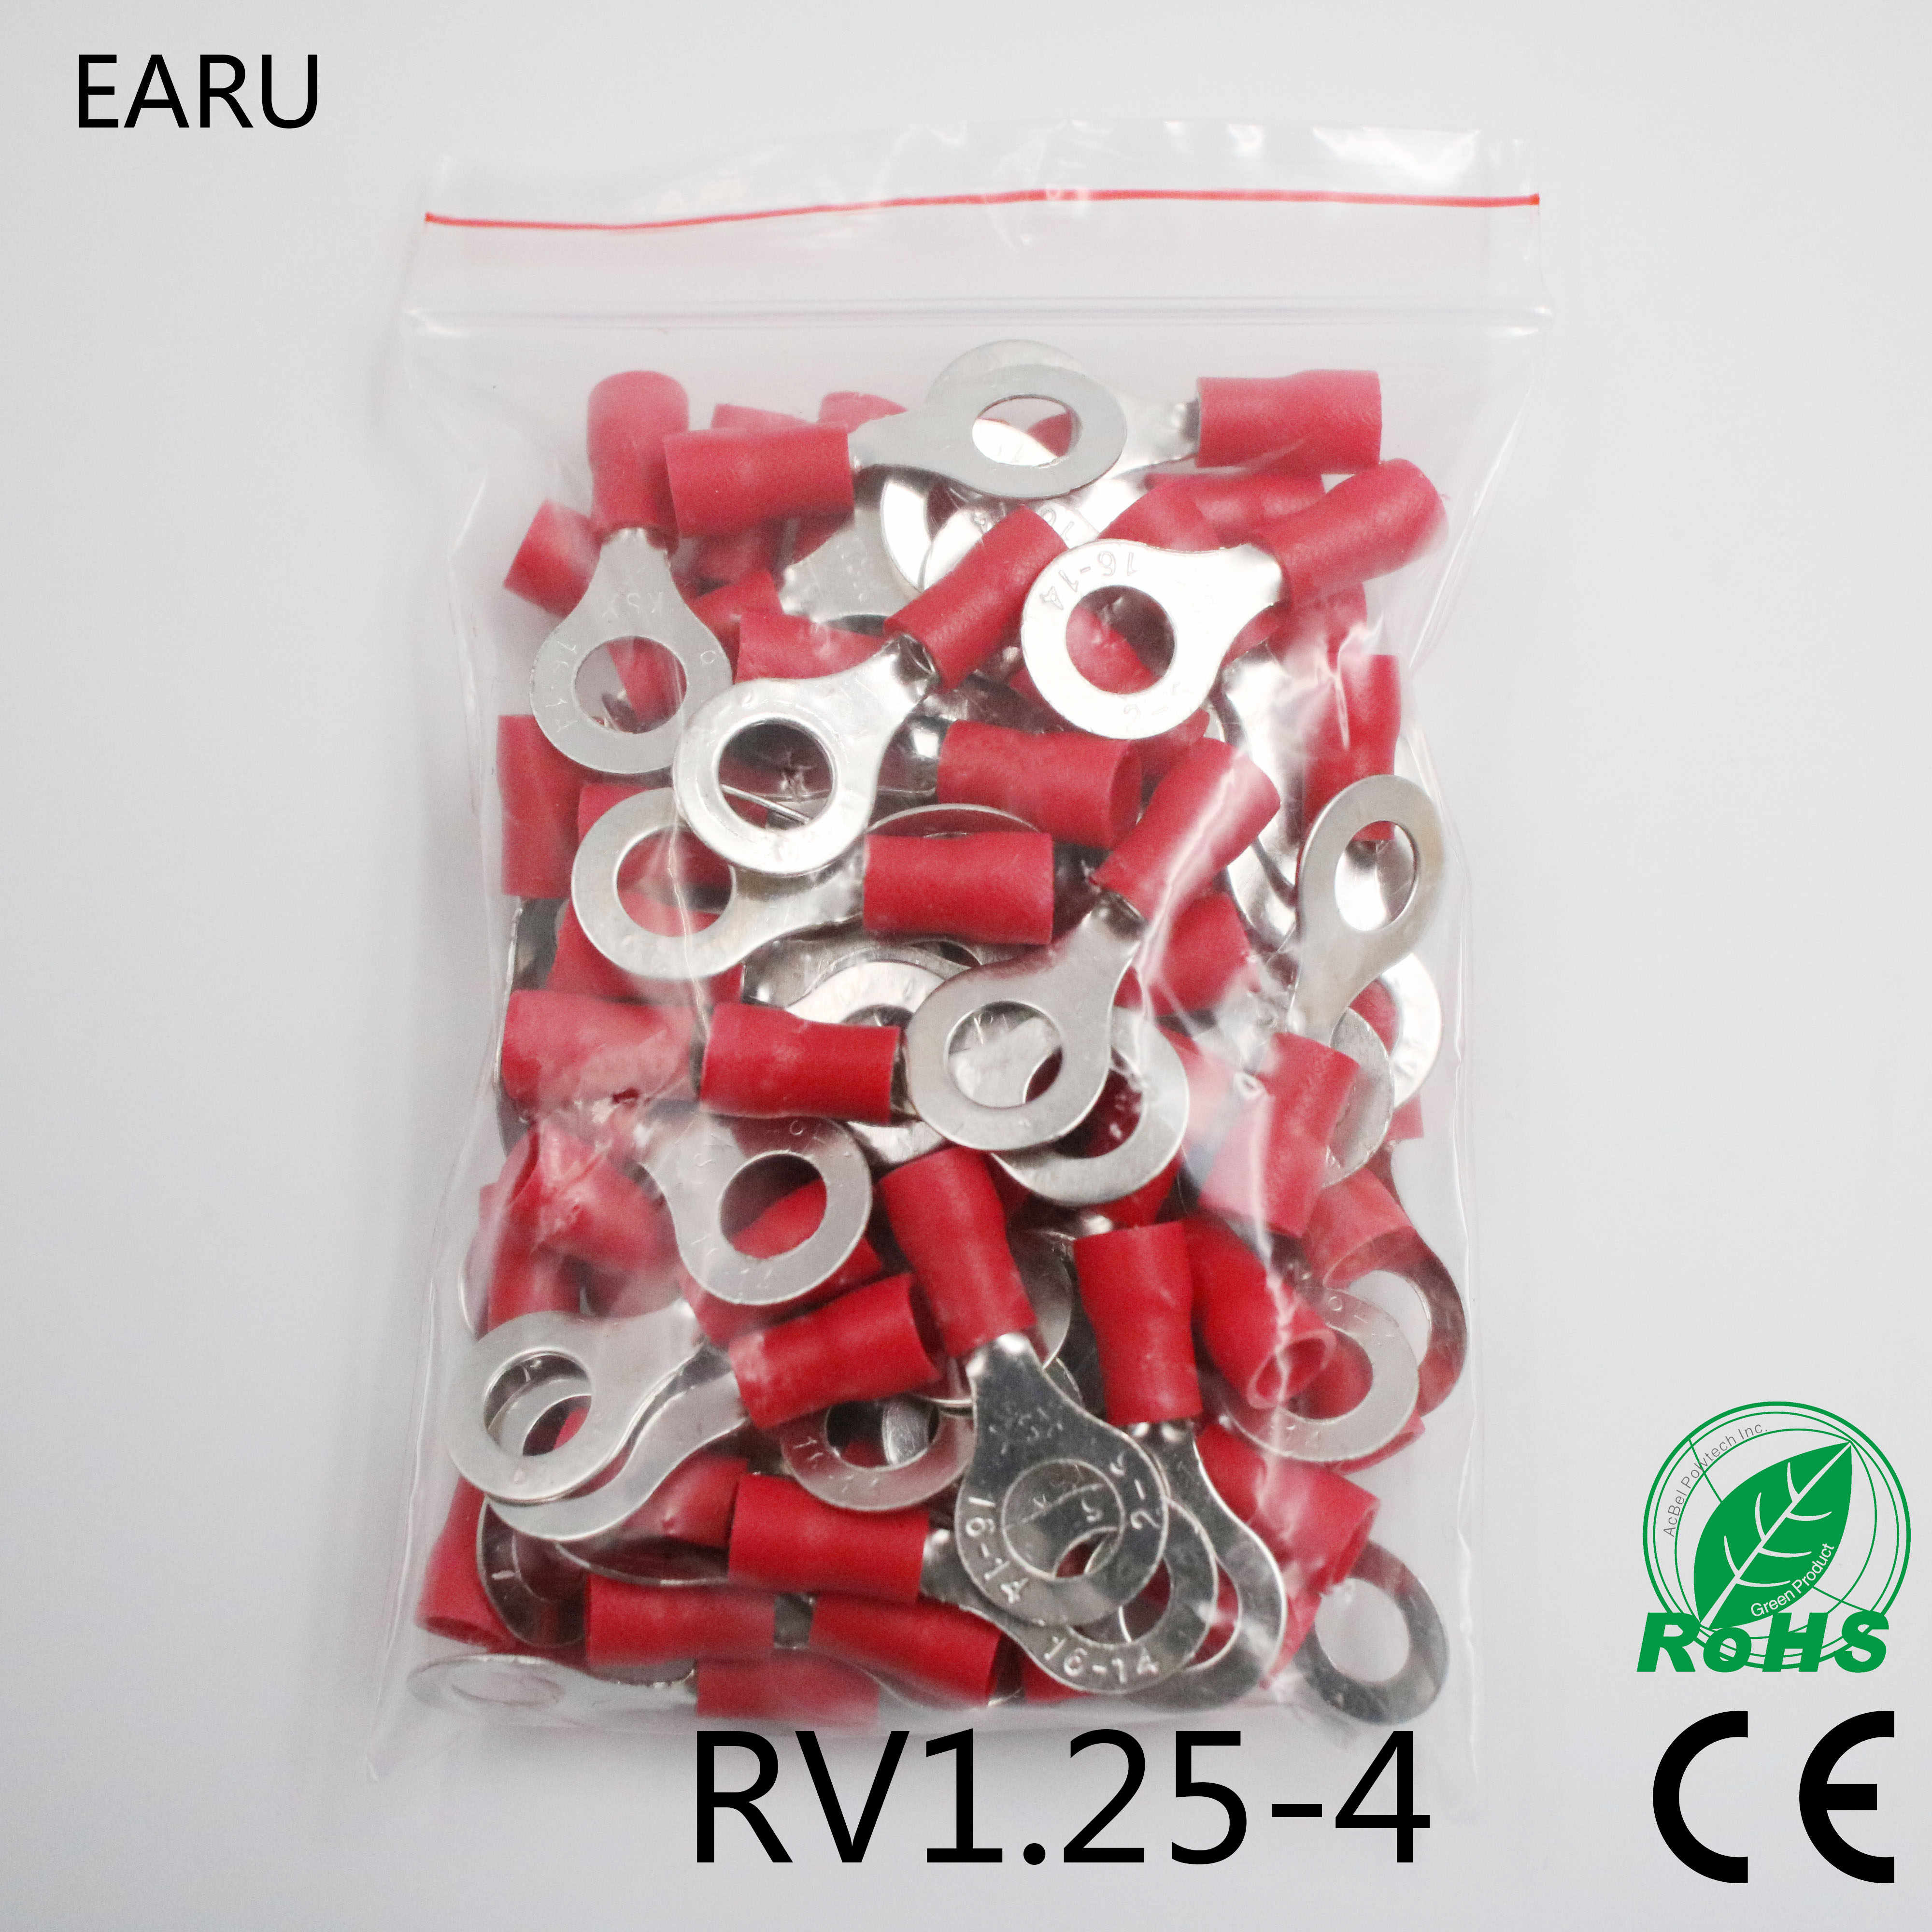 RV1.25-4 Red Ring Insulated Wire Connector Electrical Crimp Terminal RV1.25-4 Cable Wire Connector 100PCS RV1-4 RV